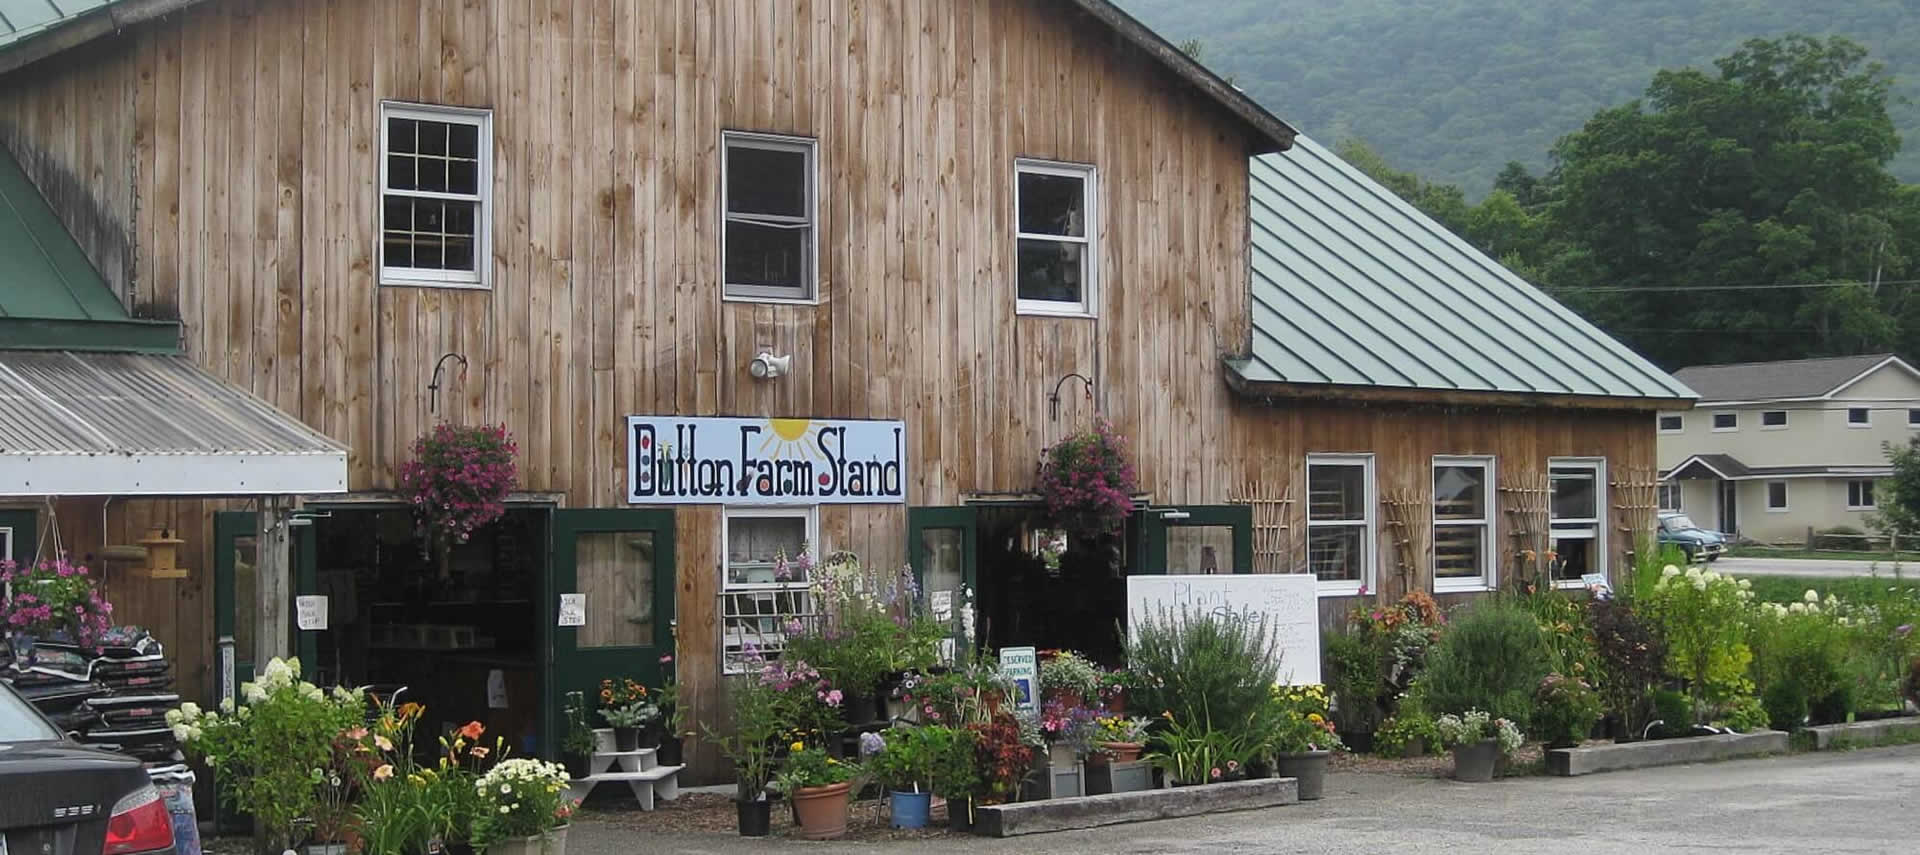 Wooden barn building surrounded with plants and flowers with a sign that says Dutton Farm Stand.